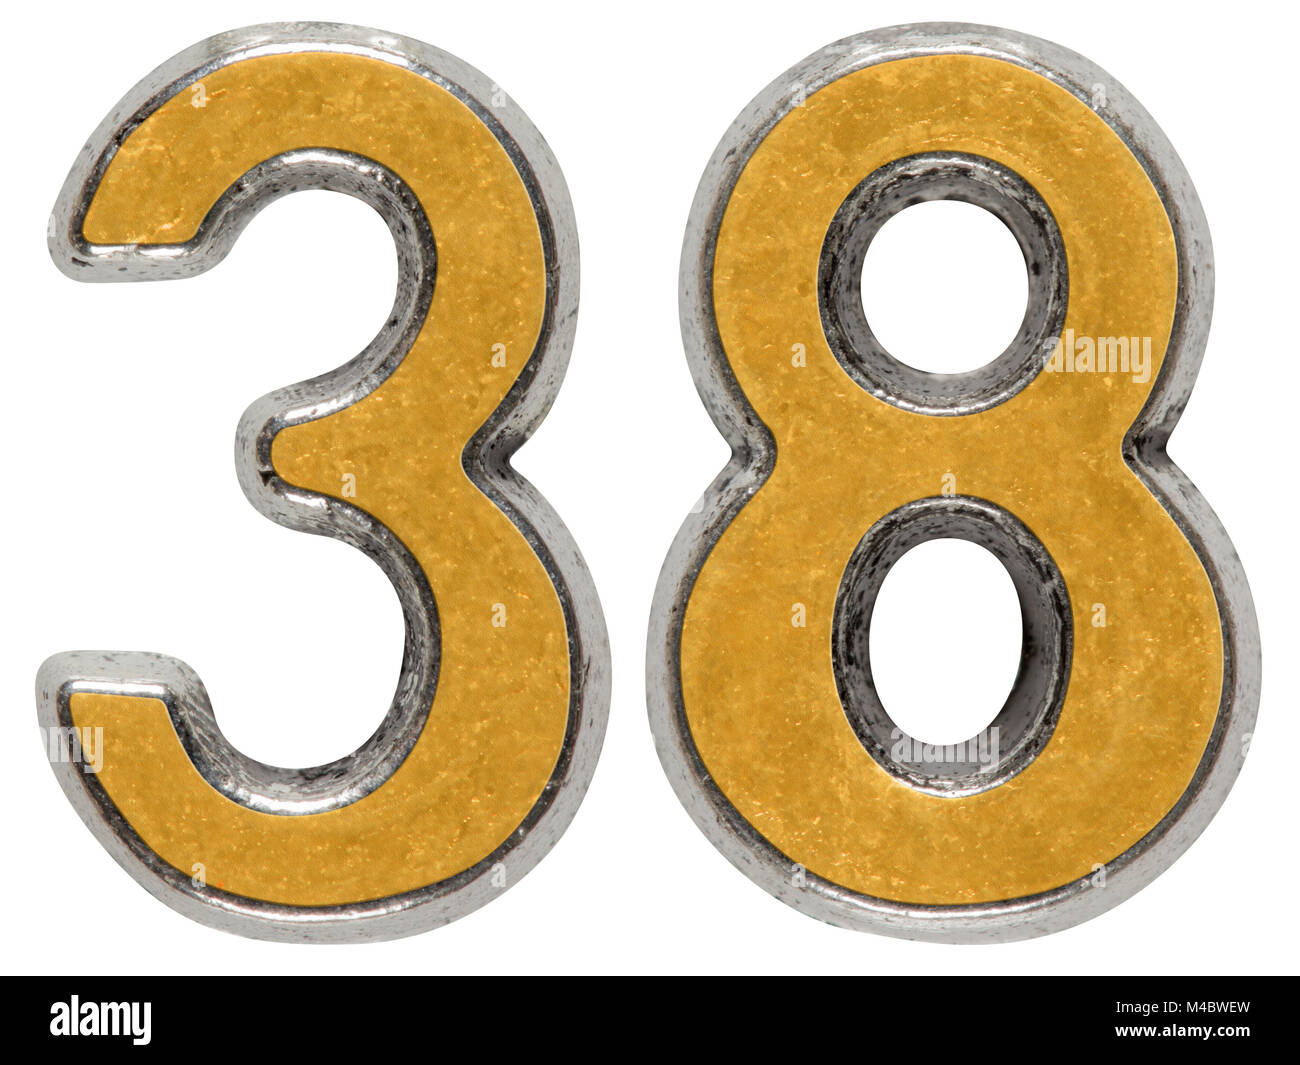 Metal numeral 38, thirty-eight, isolated on white background - Stock Image